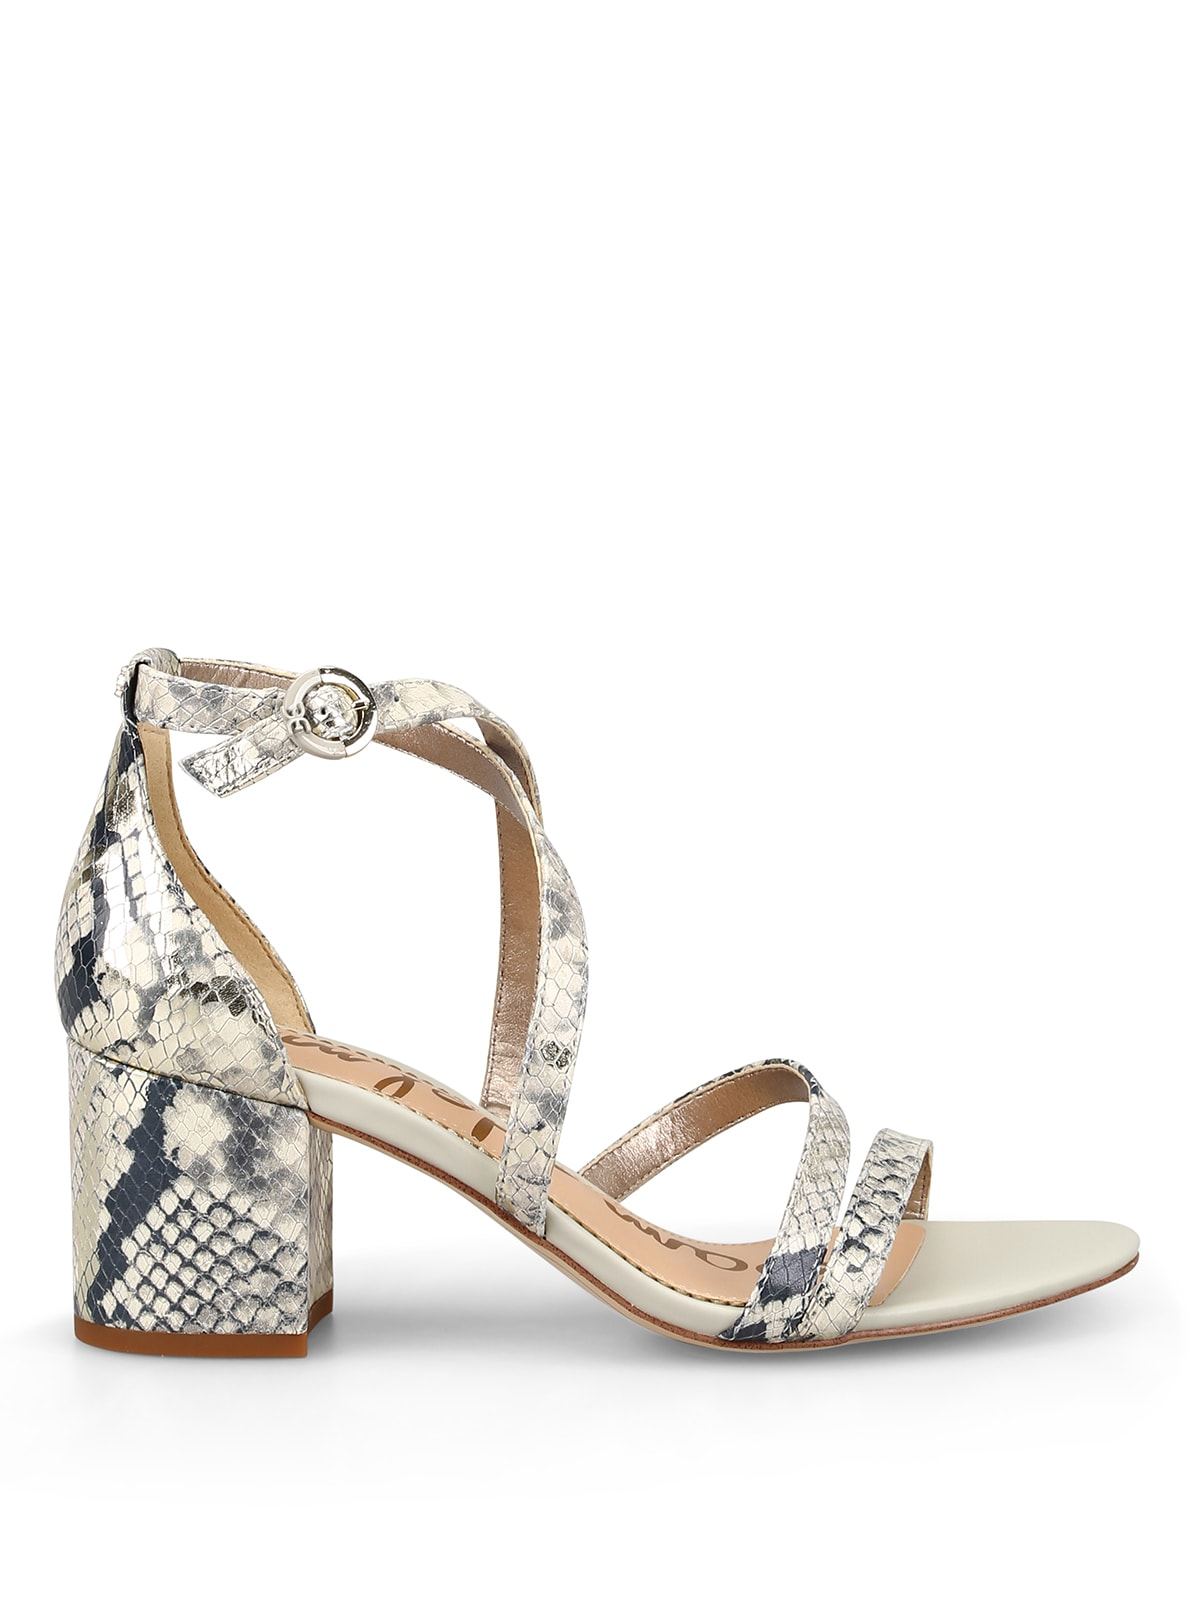 Buy Sam Edelman Shoes online, shop Sam Edelman shoes with free shipping